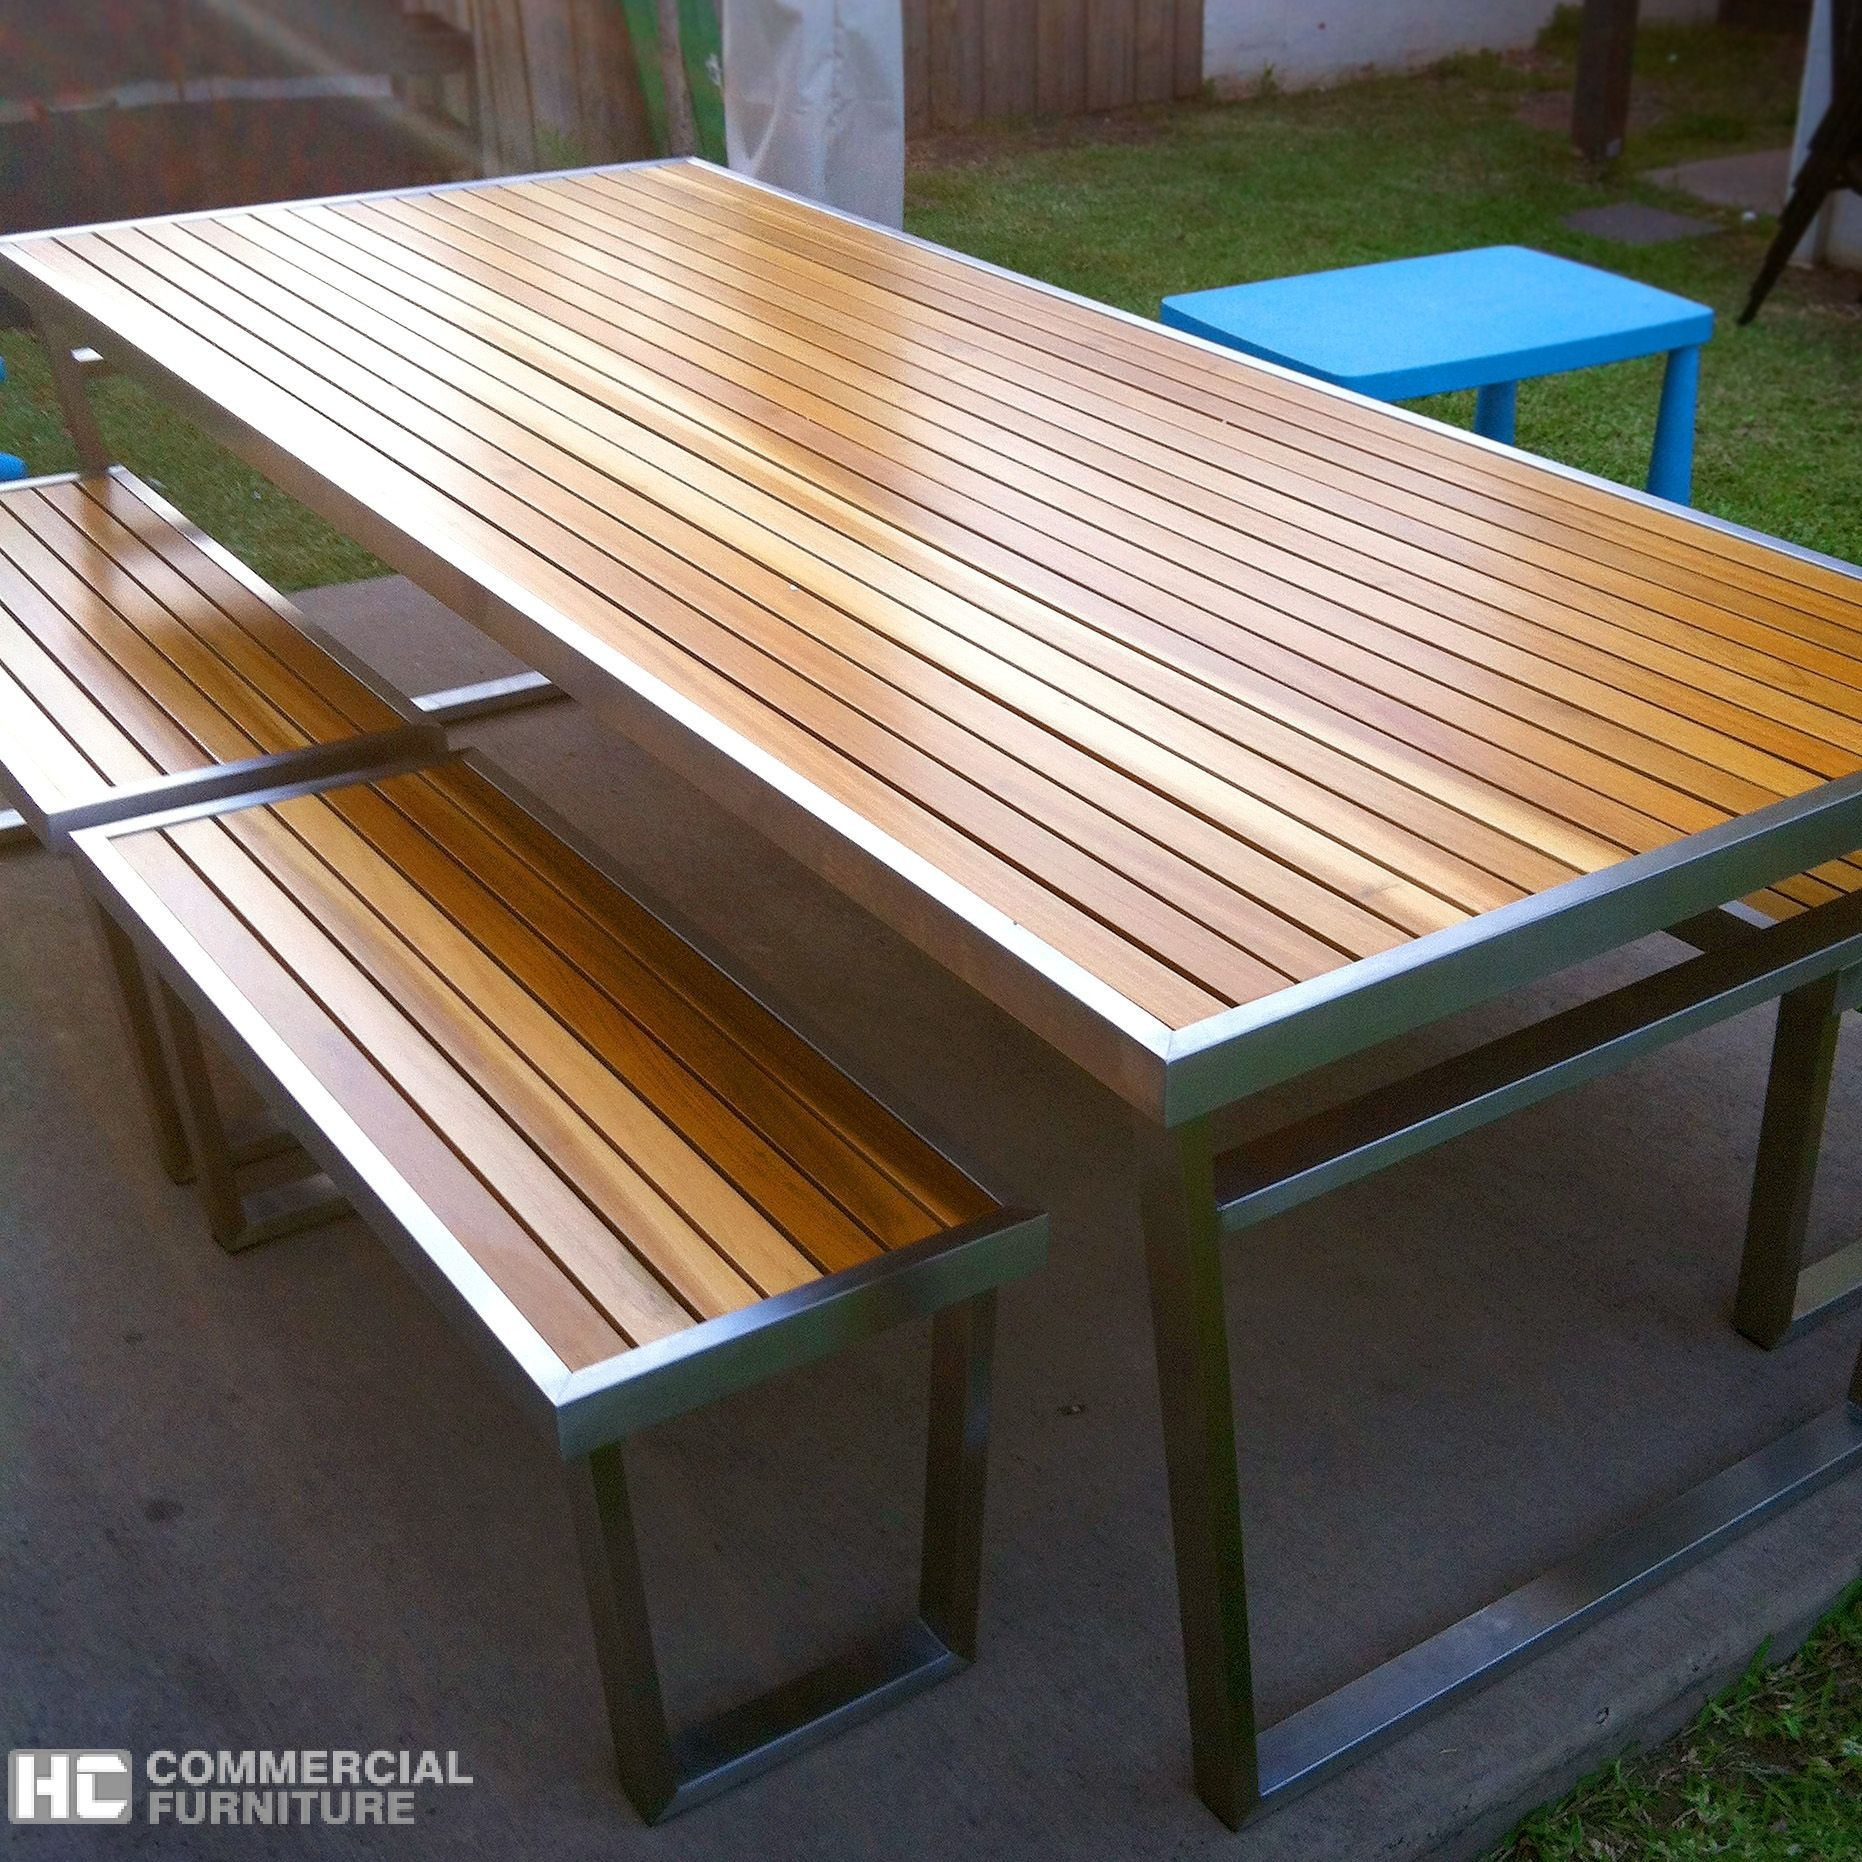 Peachy Image Result For Commercial Wooden Patio Furniture Gmtry Best Dining Table And Chair Ideas Images Gmtryco